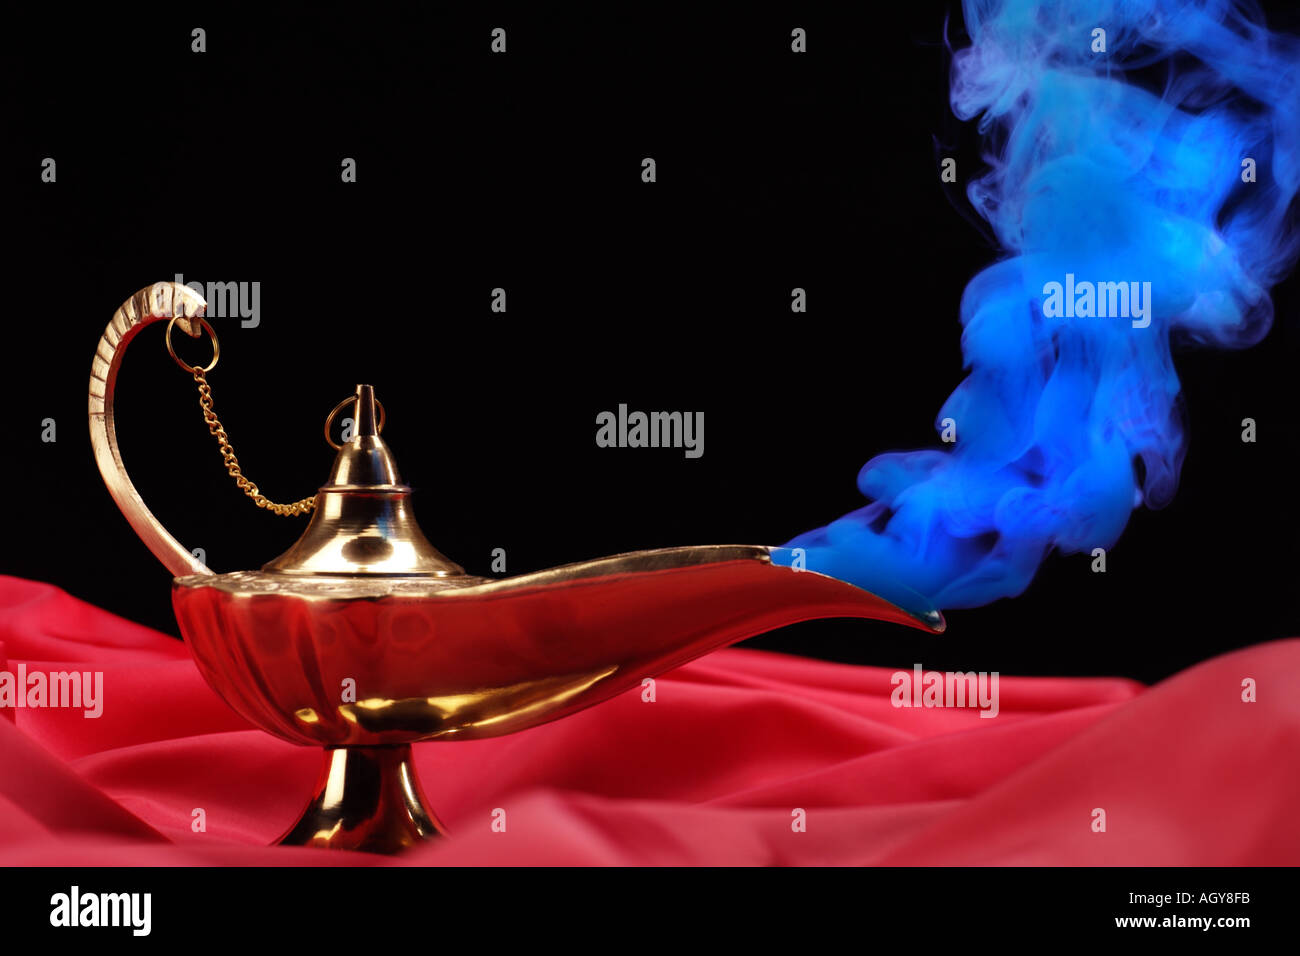 Genie s Lamp blue smoke Stock Photo, Royalty Free Image: 2668794 ... for Magic Lamp With Smoke  183qdu